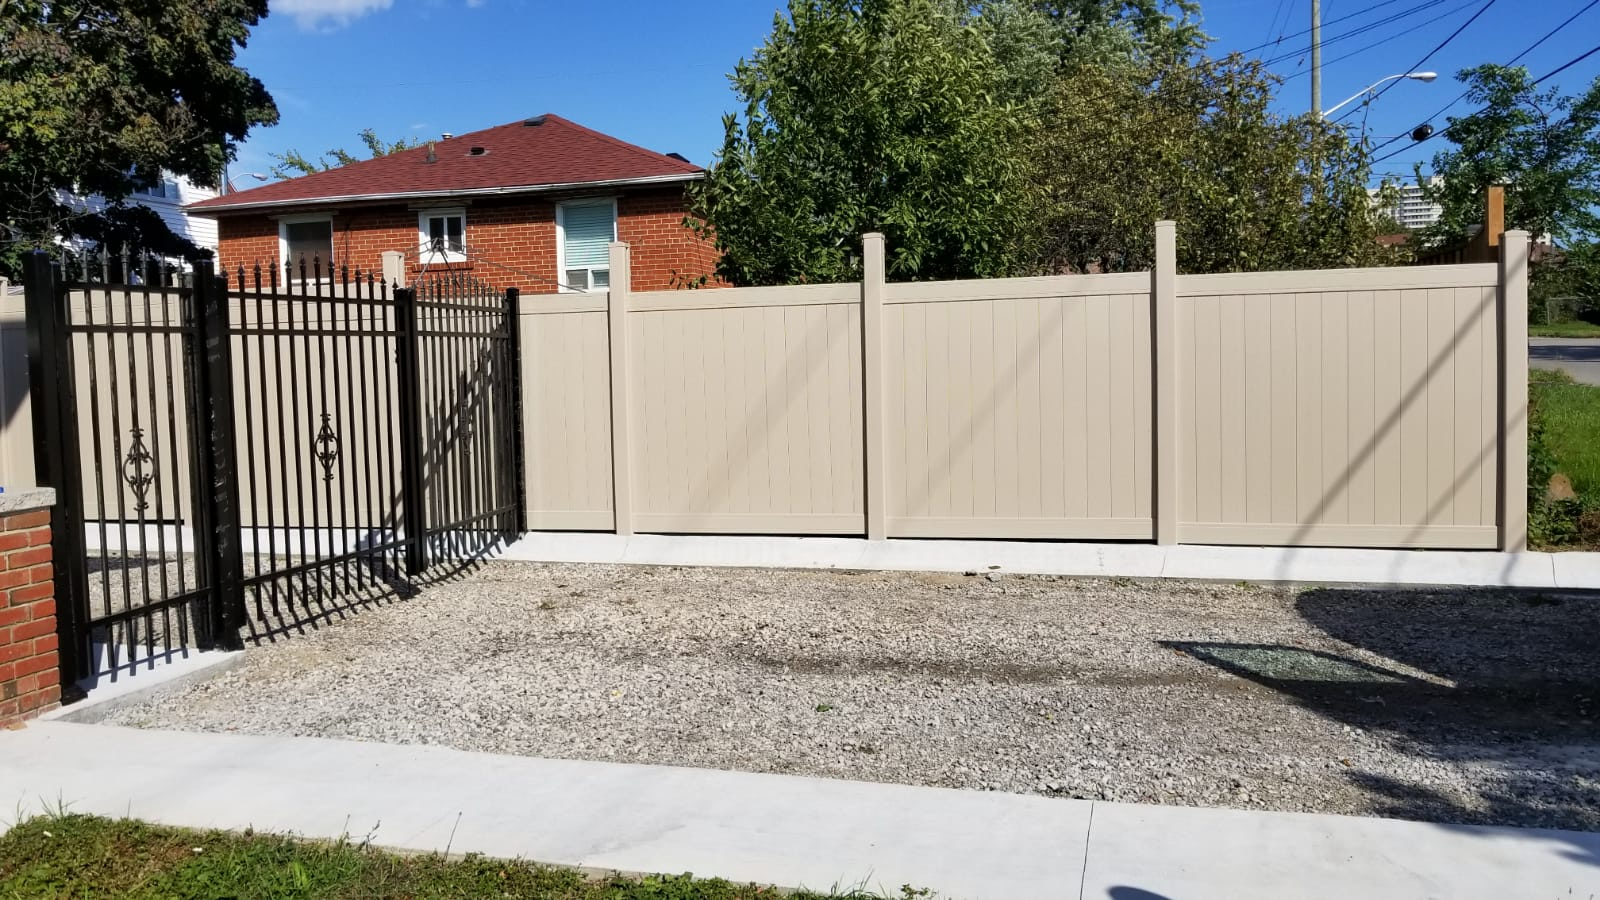 privacy-fence-with-aluminum-gate-by-vinyl-fence-toronto